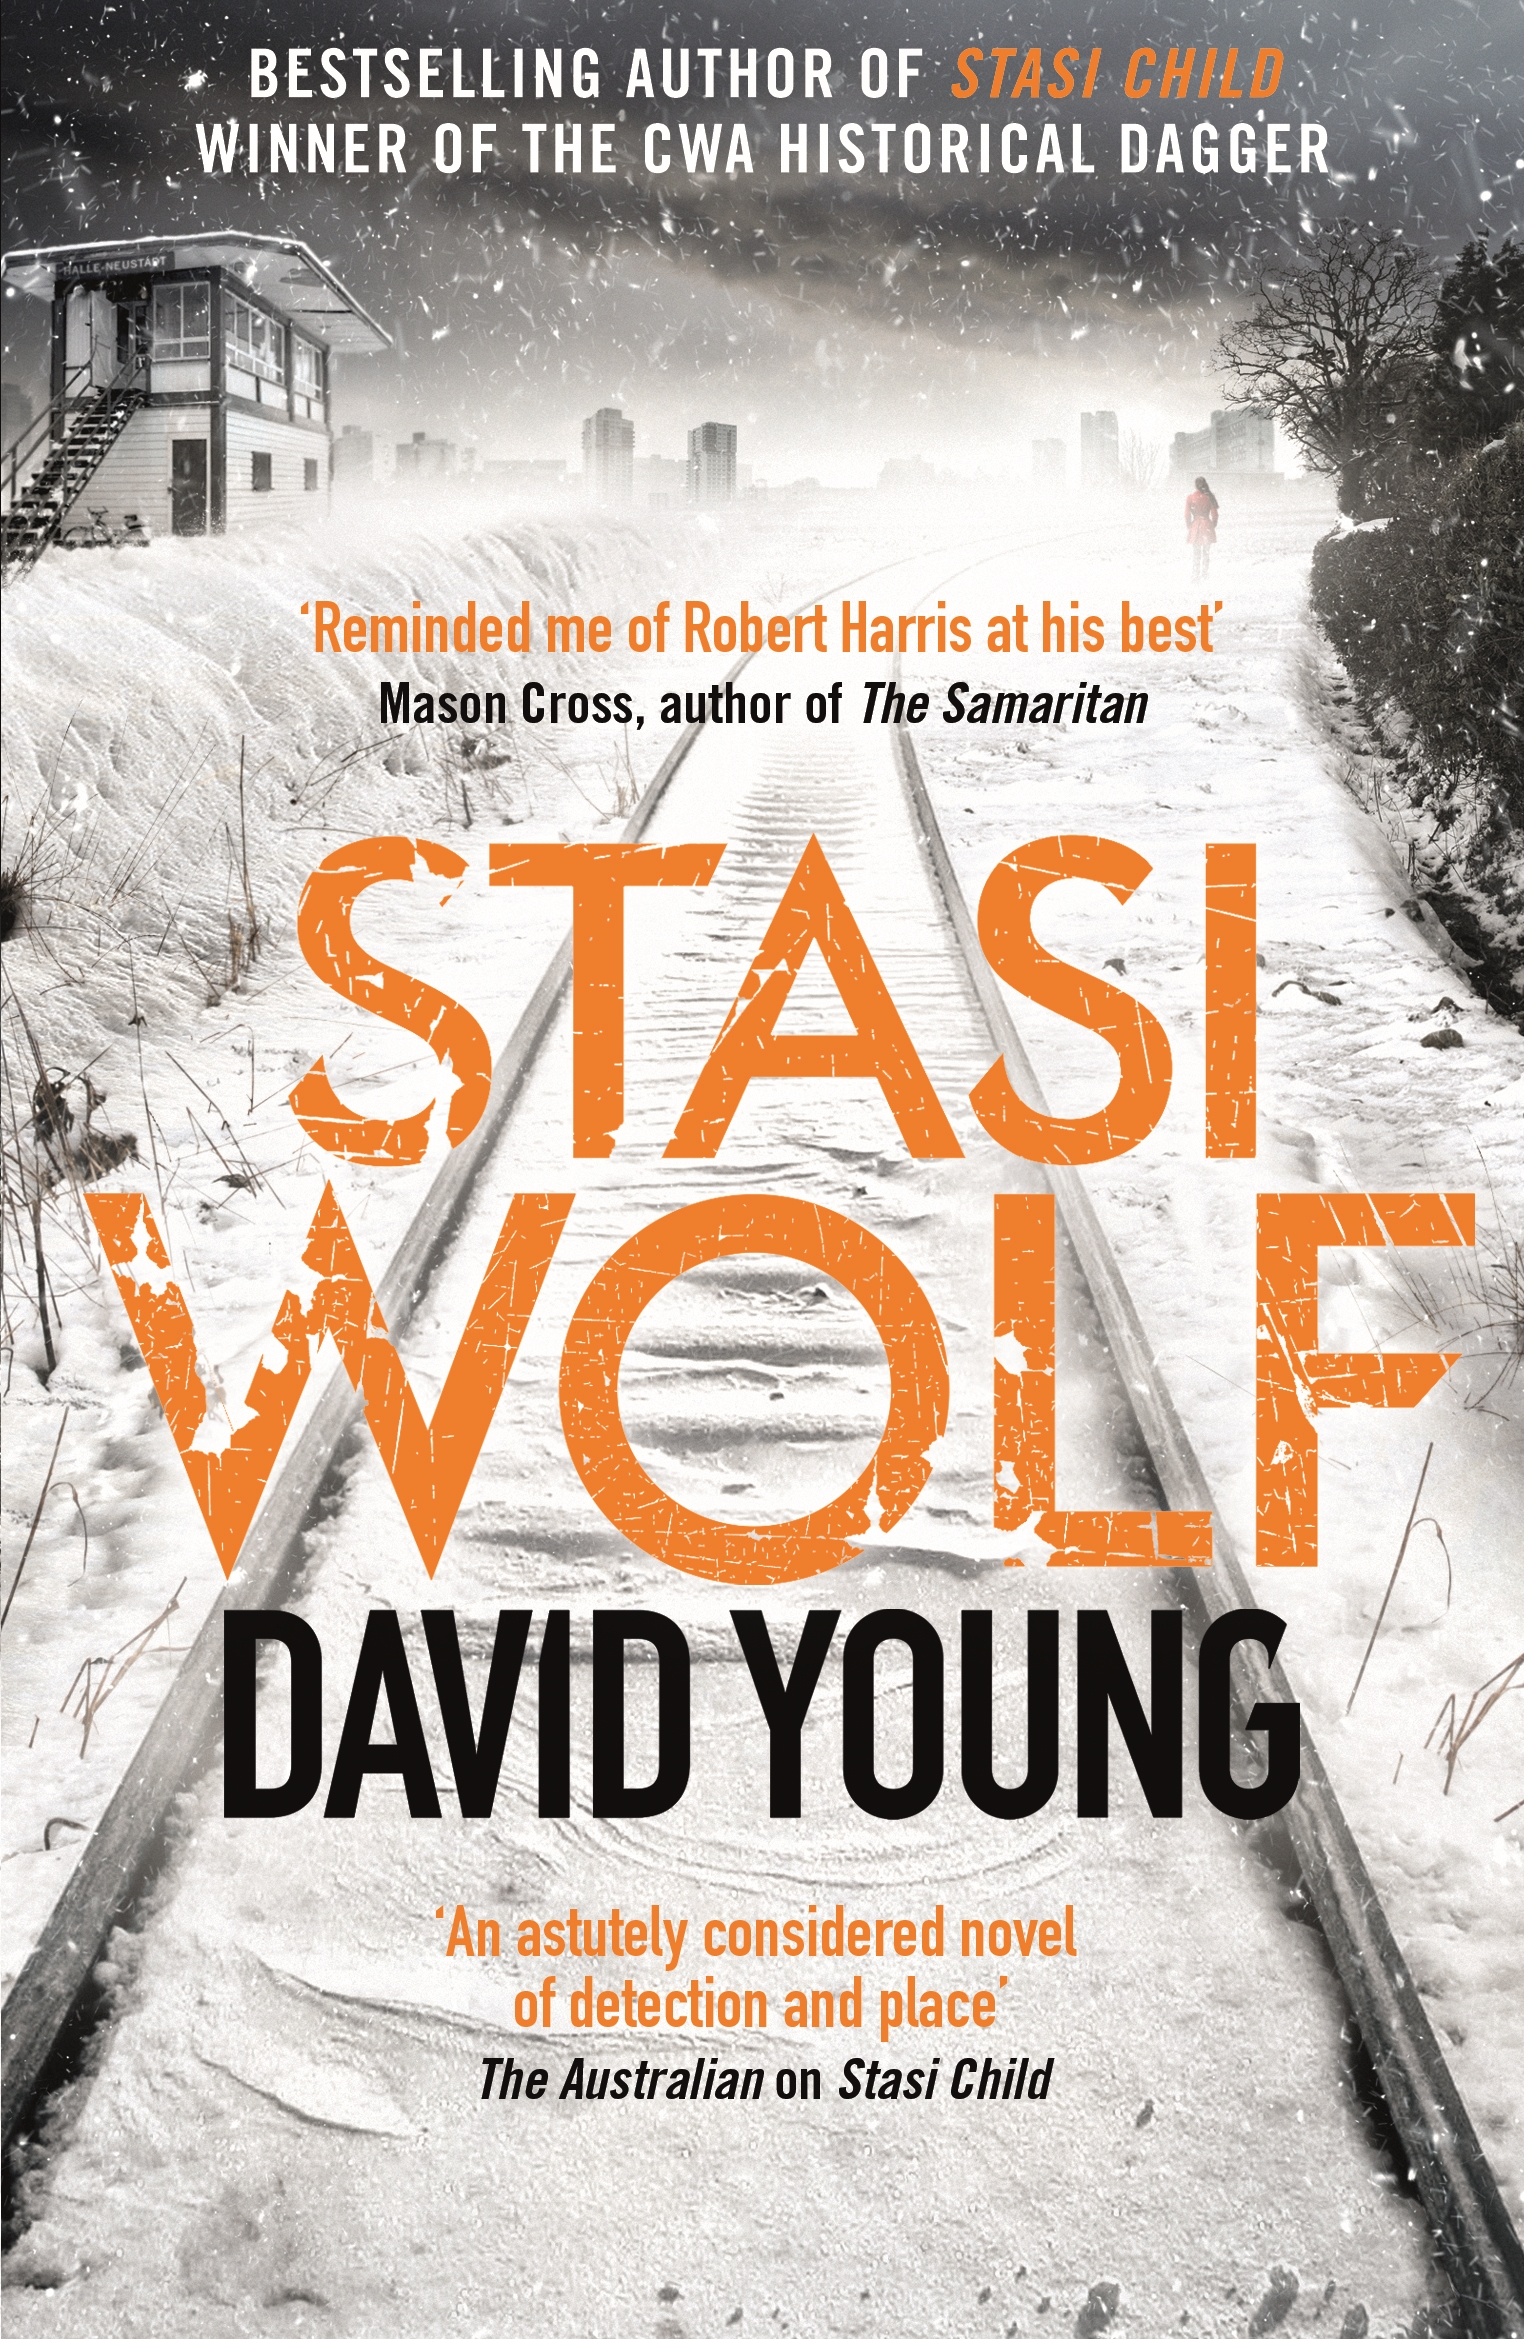 CTG EXCLUSIVE: STASI WOLF AND THE CROSSWORD PUZZLE MURDER